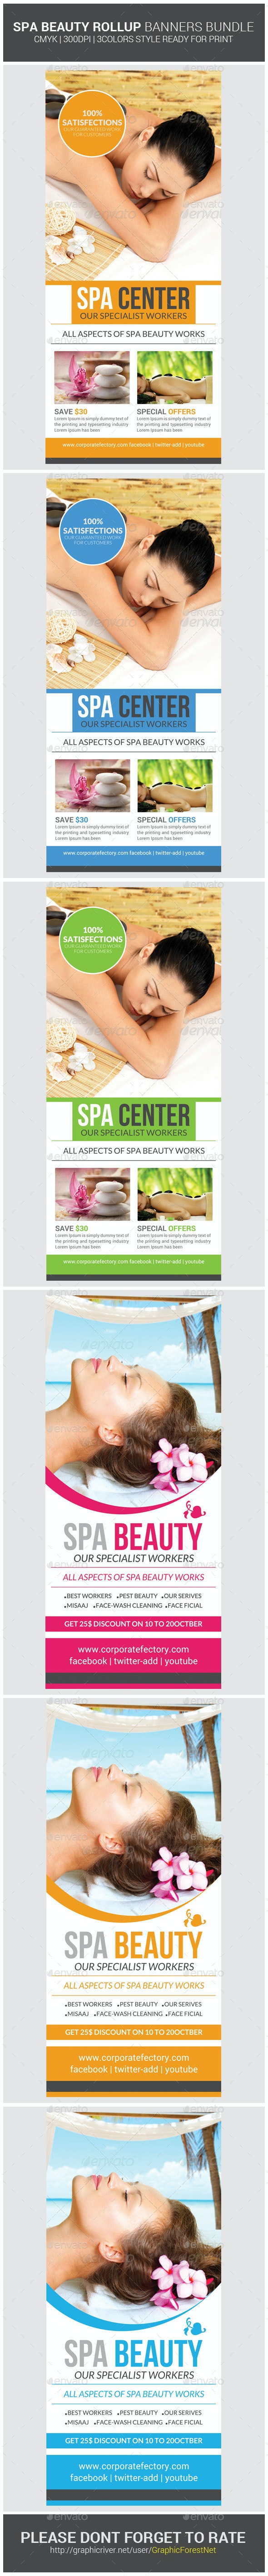 Spa & Beauty Saloon Roll-up Banners Bundle - Signage Print Templates